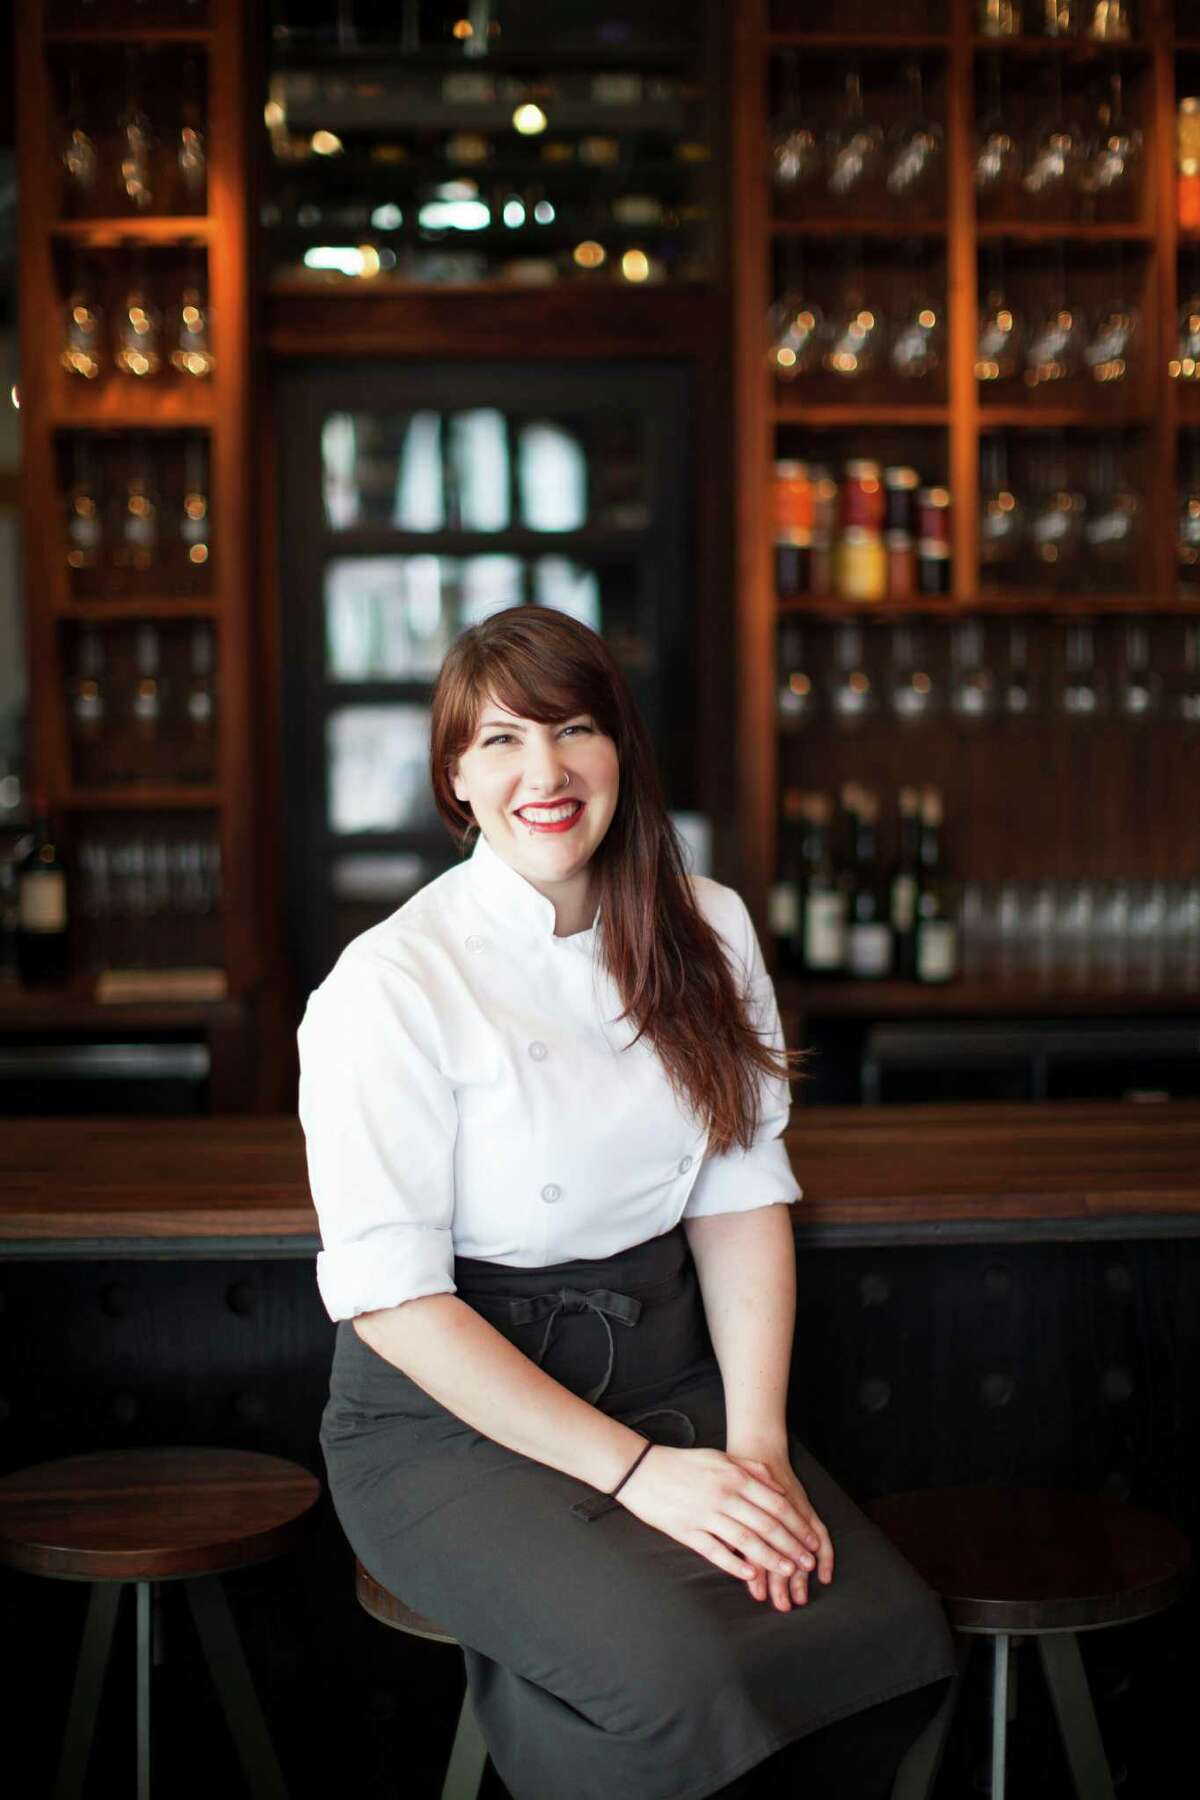 Victoria Dearmond, Underbelly pastry chef, has been named a semifinalist for 2016 Eater Young Guns, which recognizes new talent under age 30 in the food and beverage industry.